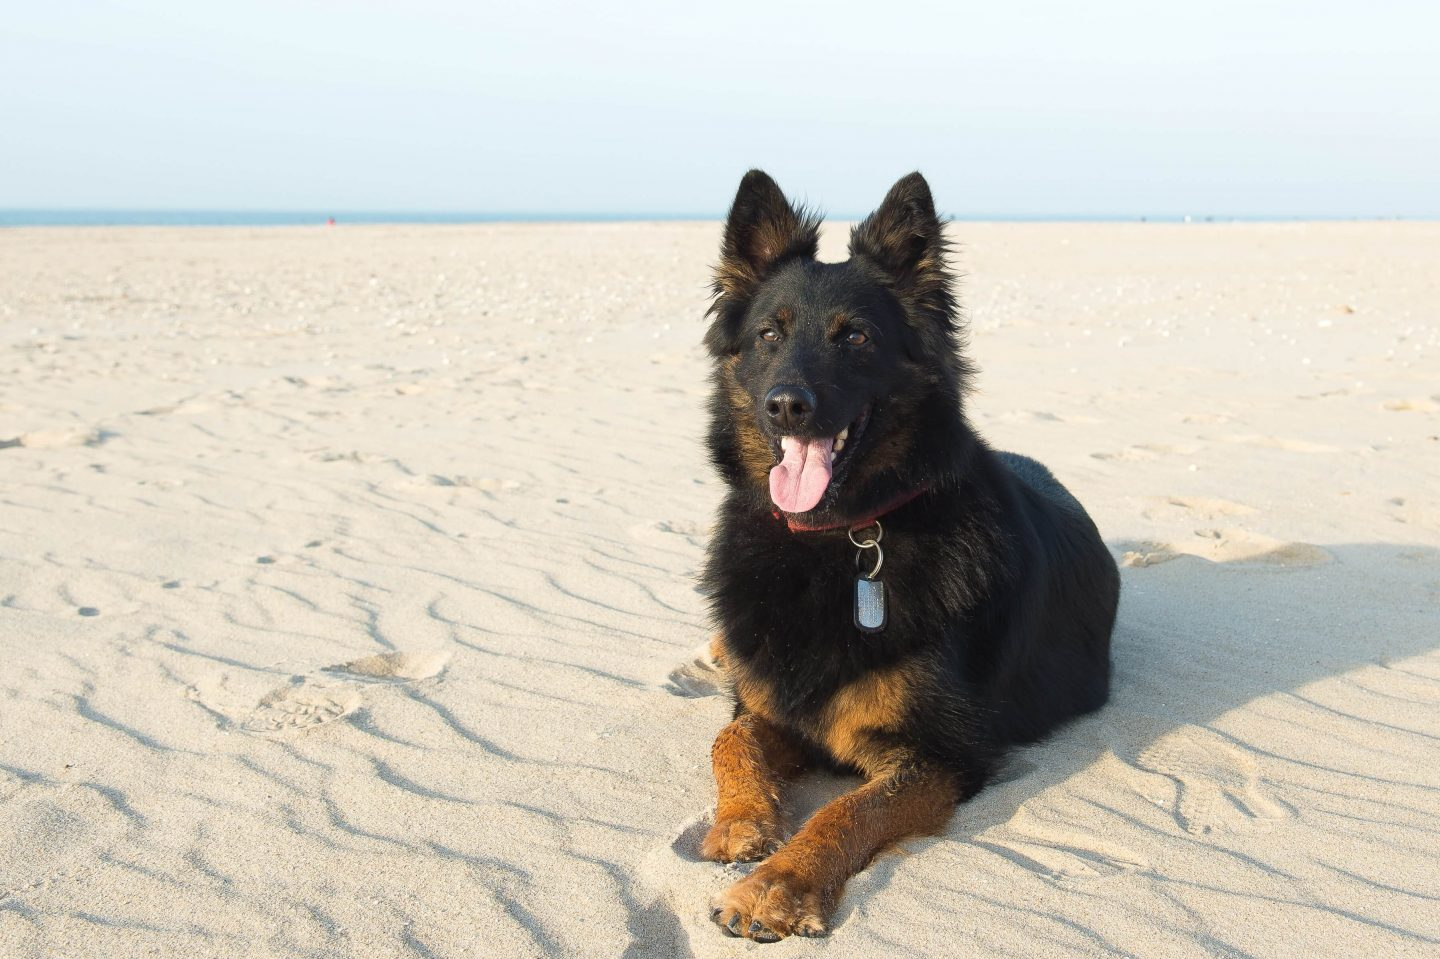 Dog movie trivia questions and answers - Alsatian